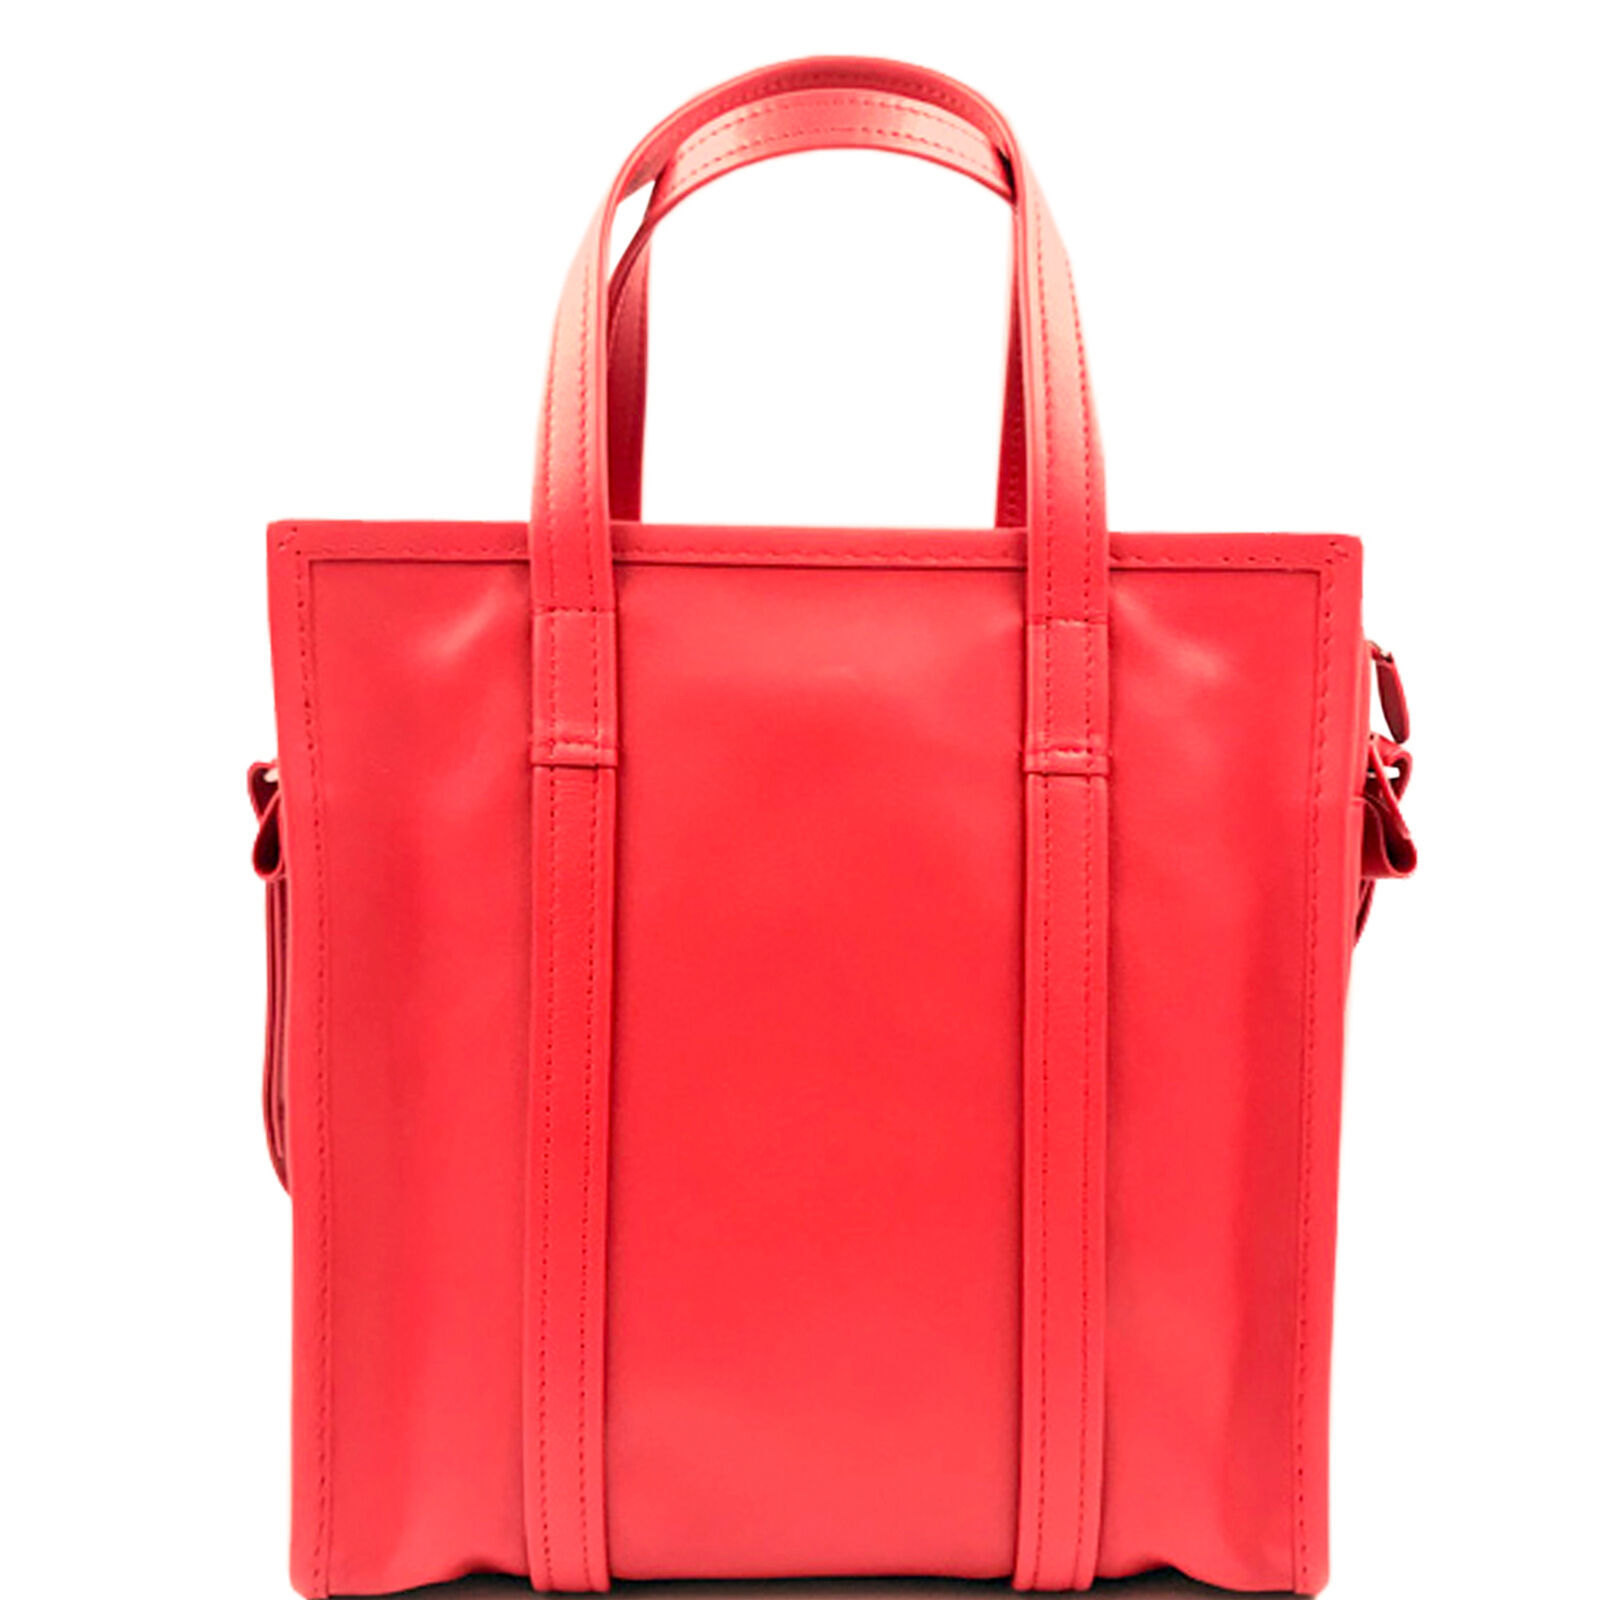 Primary image for Balenciaga Bazar Shopper Small Size Red Leather Ladies Messanger Bag 443096